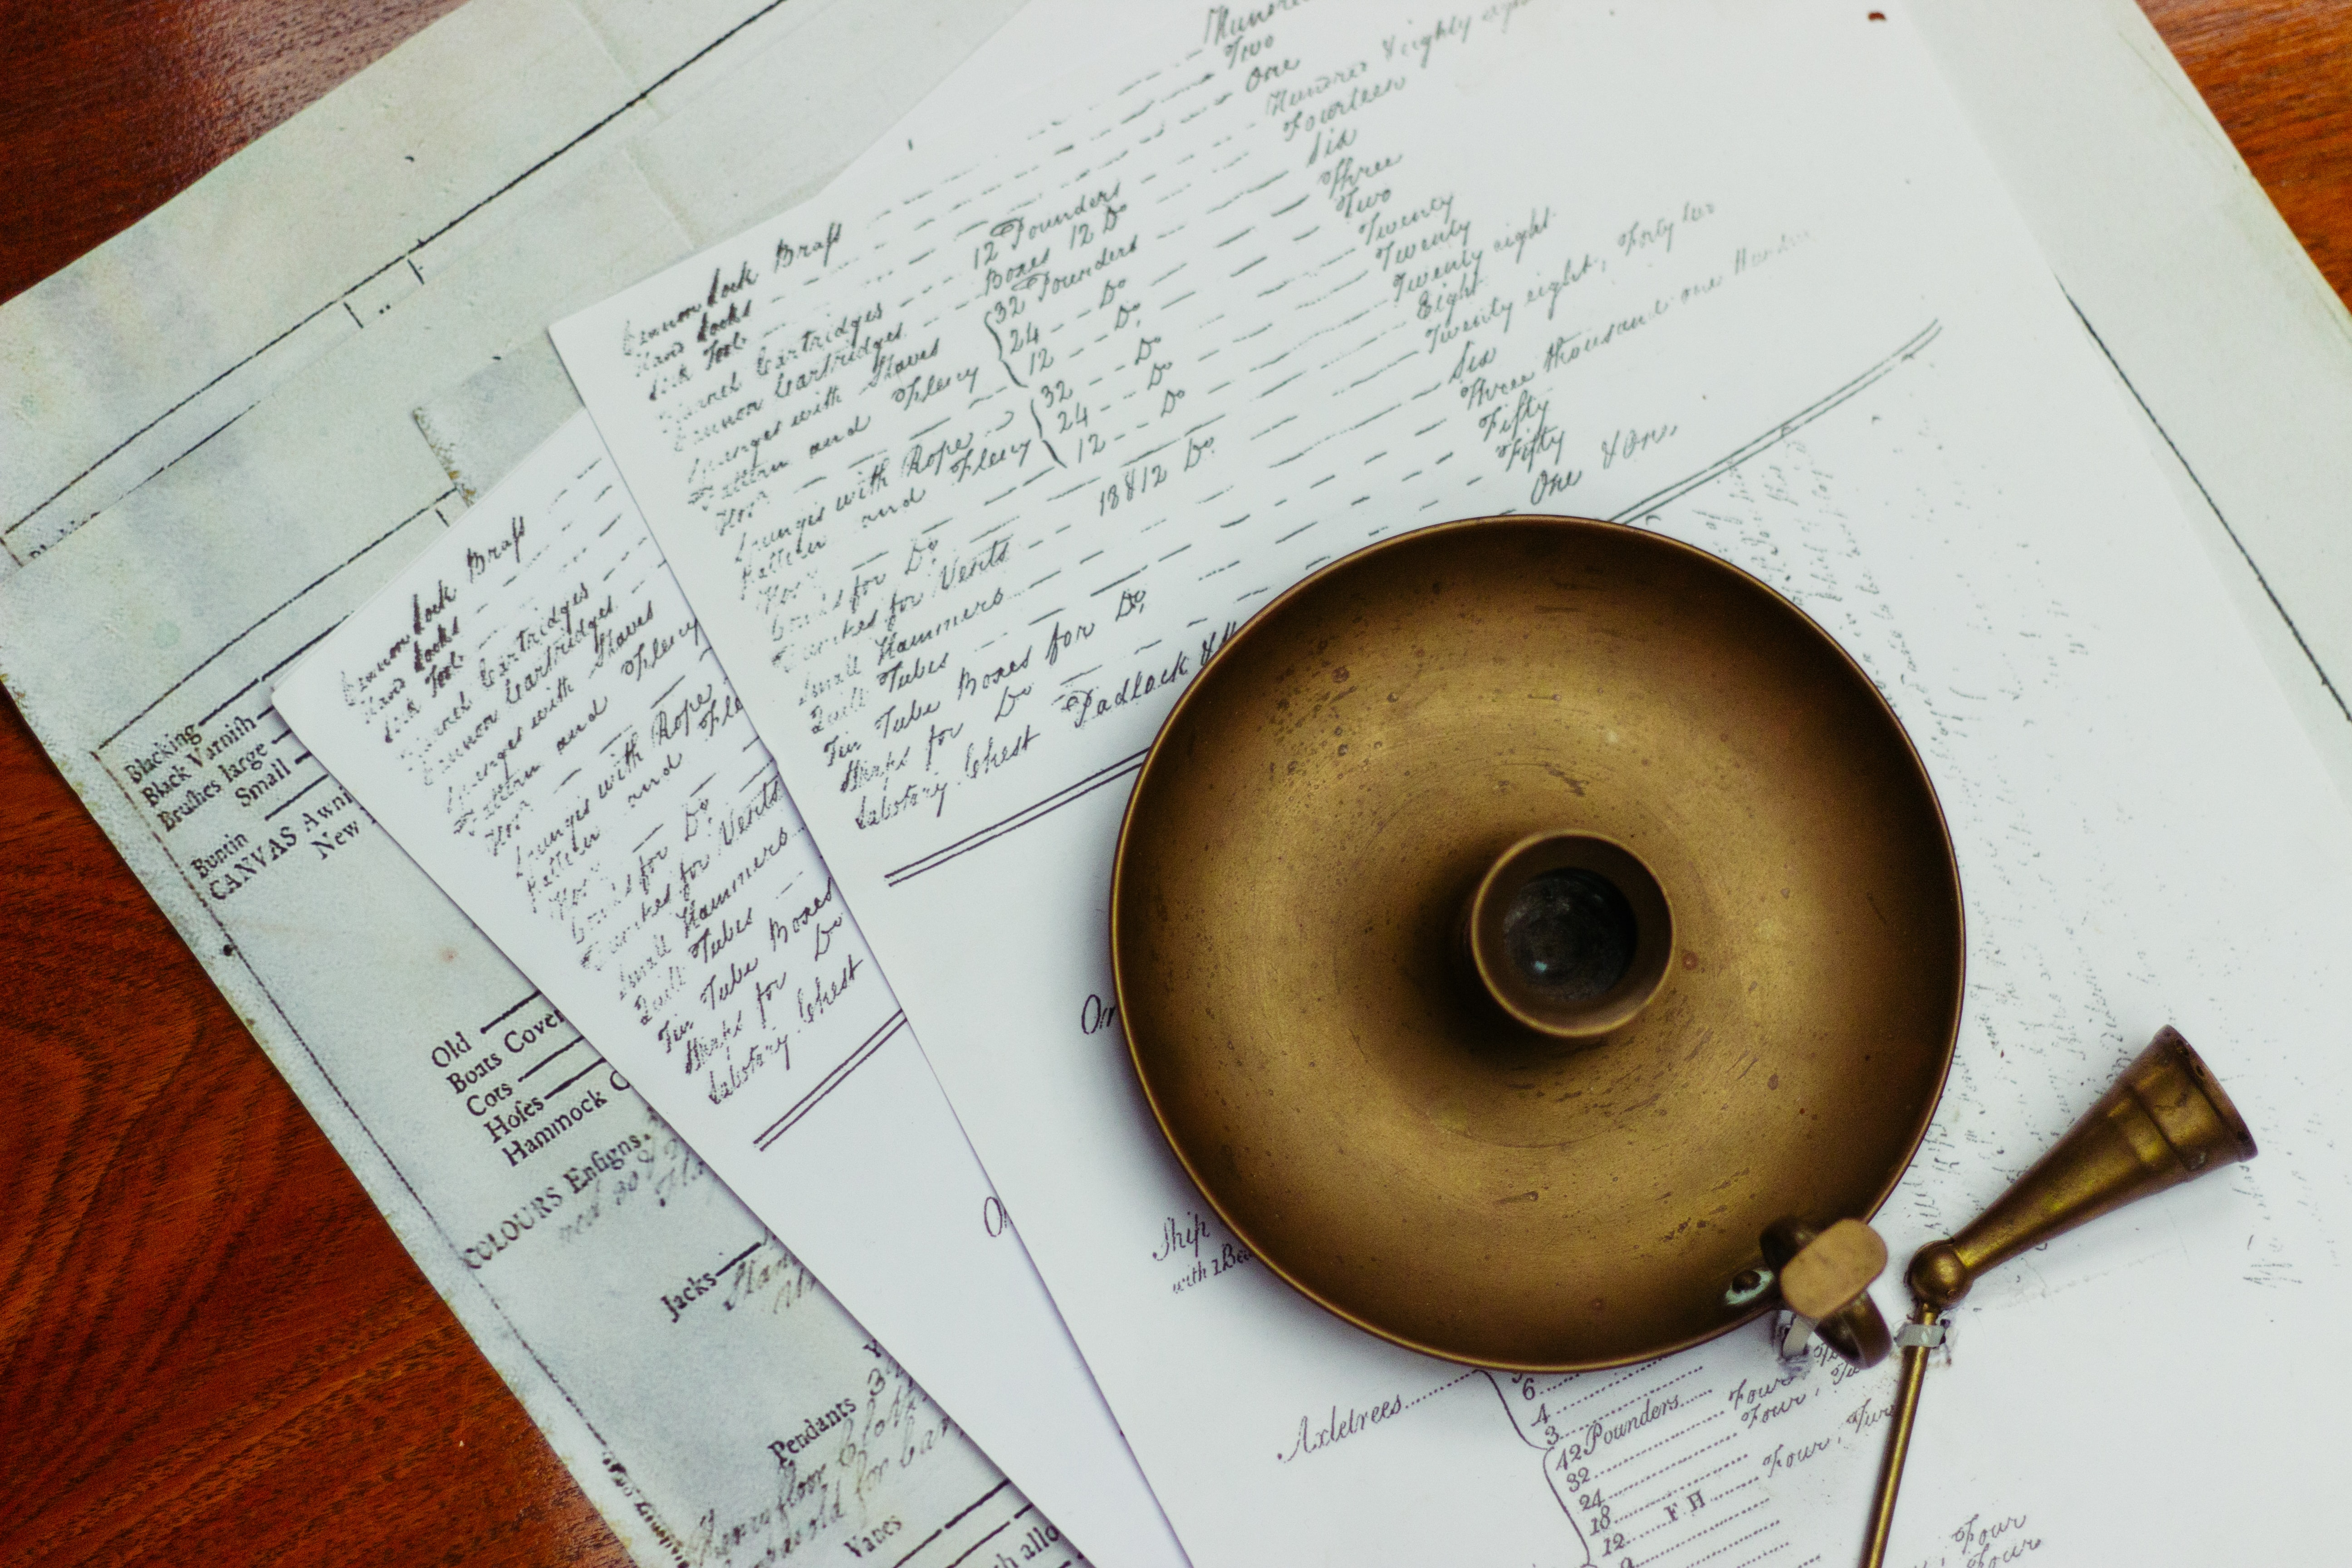 An old vintage candleholder on top of papers filled with handwritten notes in Portsmouth, England, United Kingdom